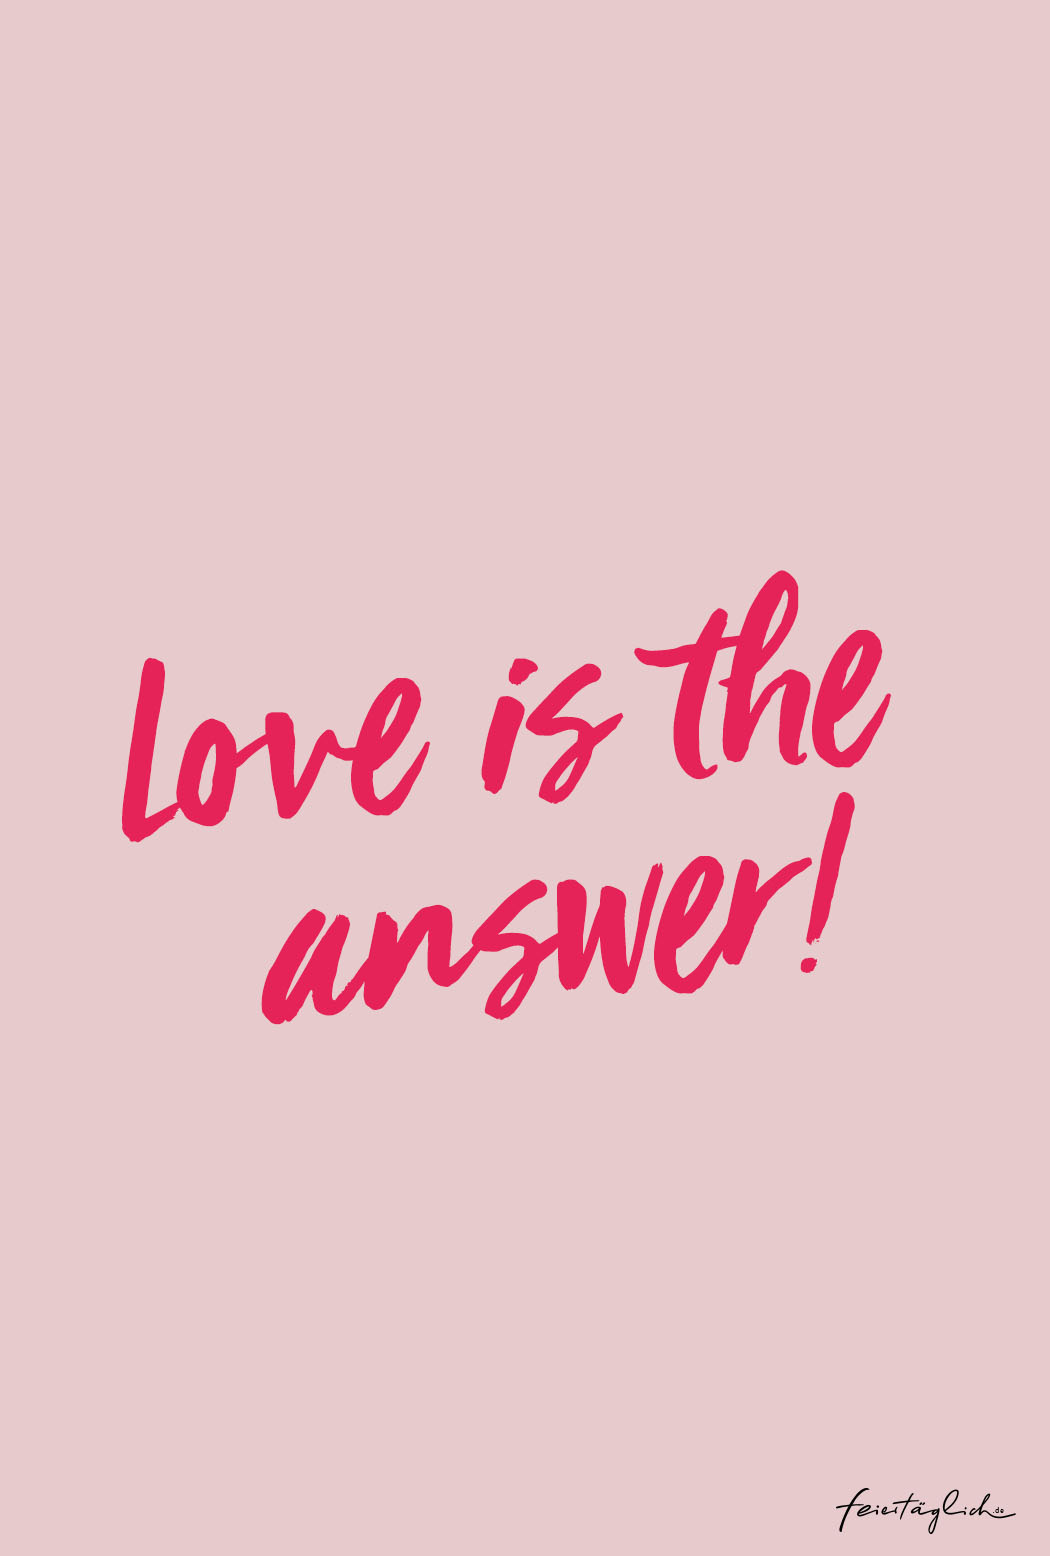 Love is the answer, quote